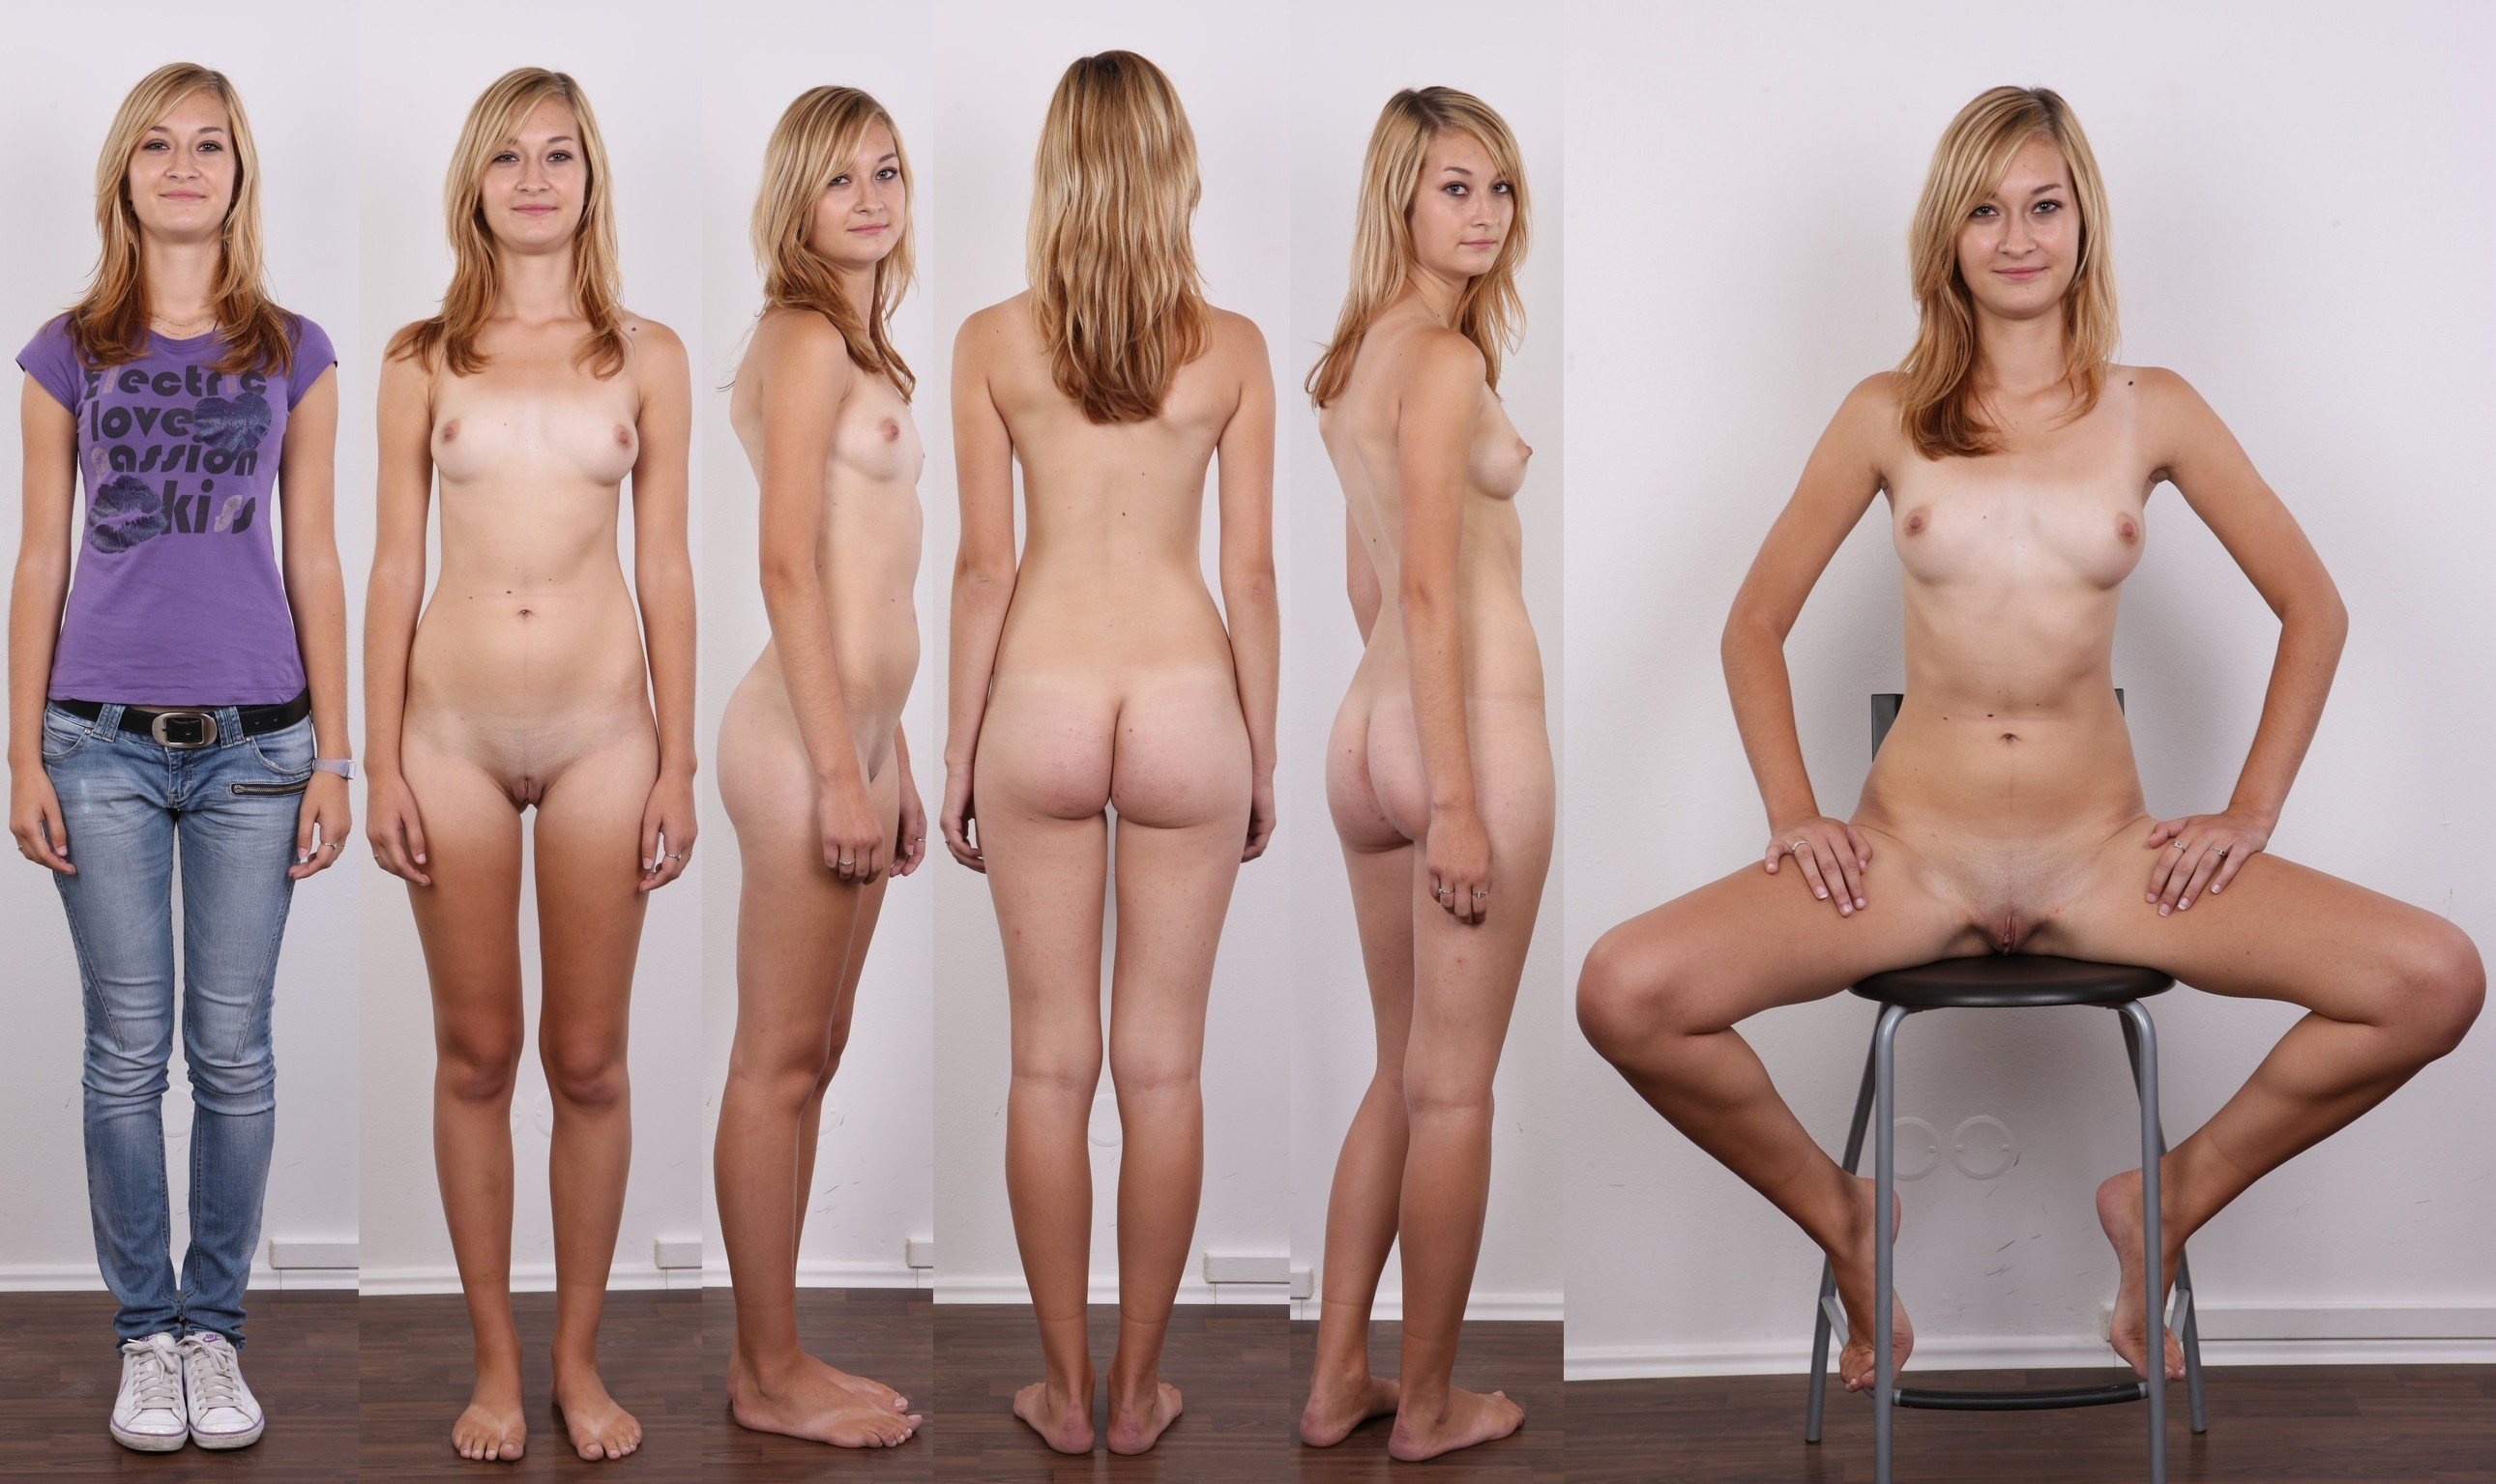 Were not dressed undressed group firmly